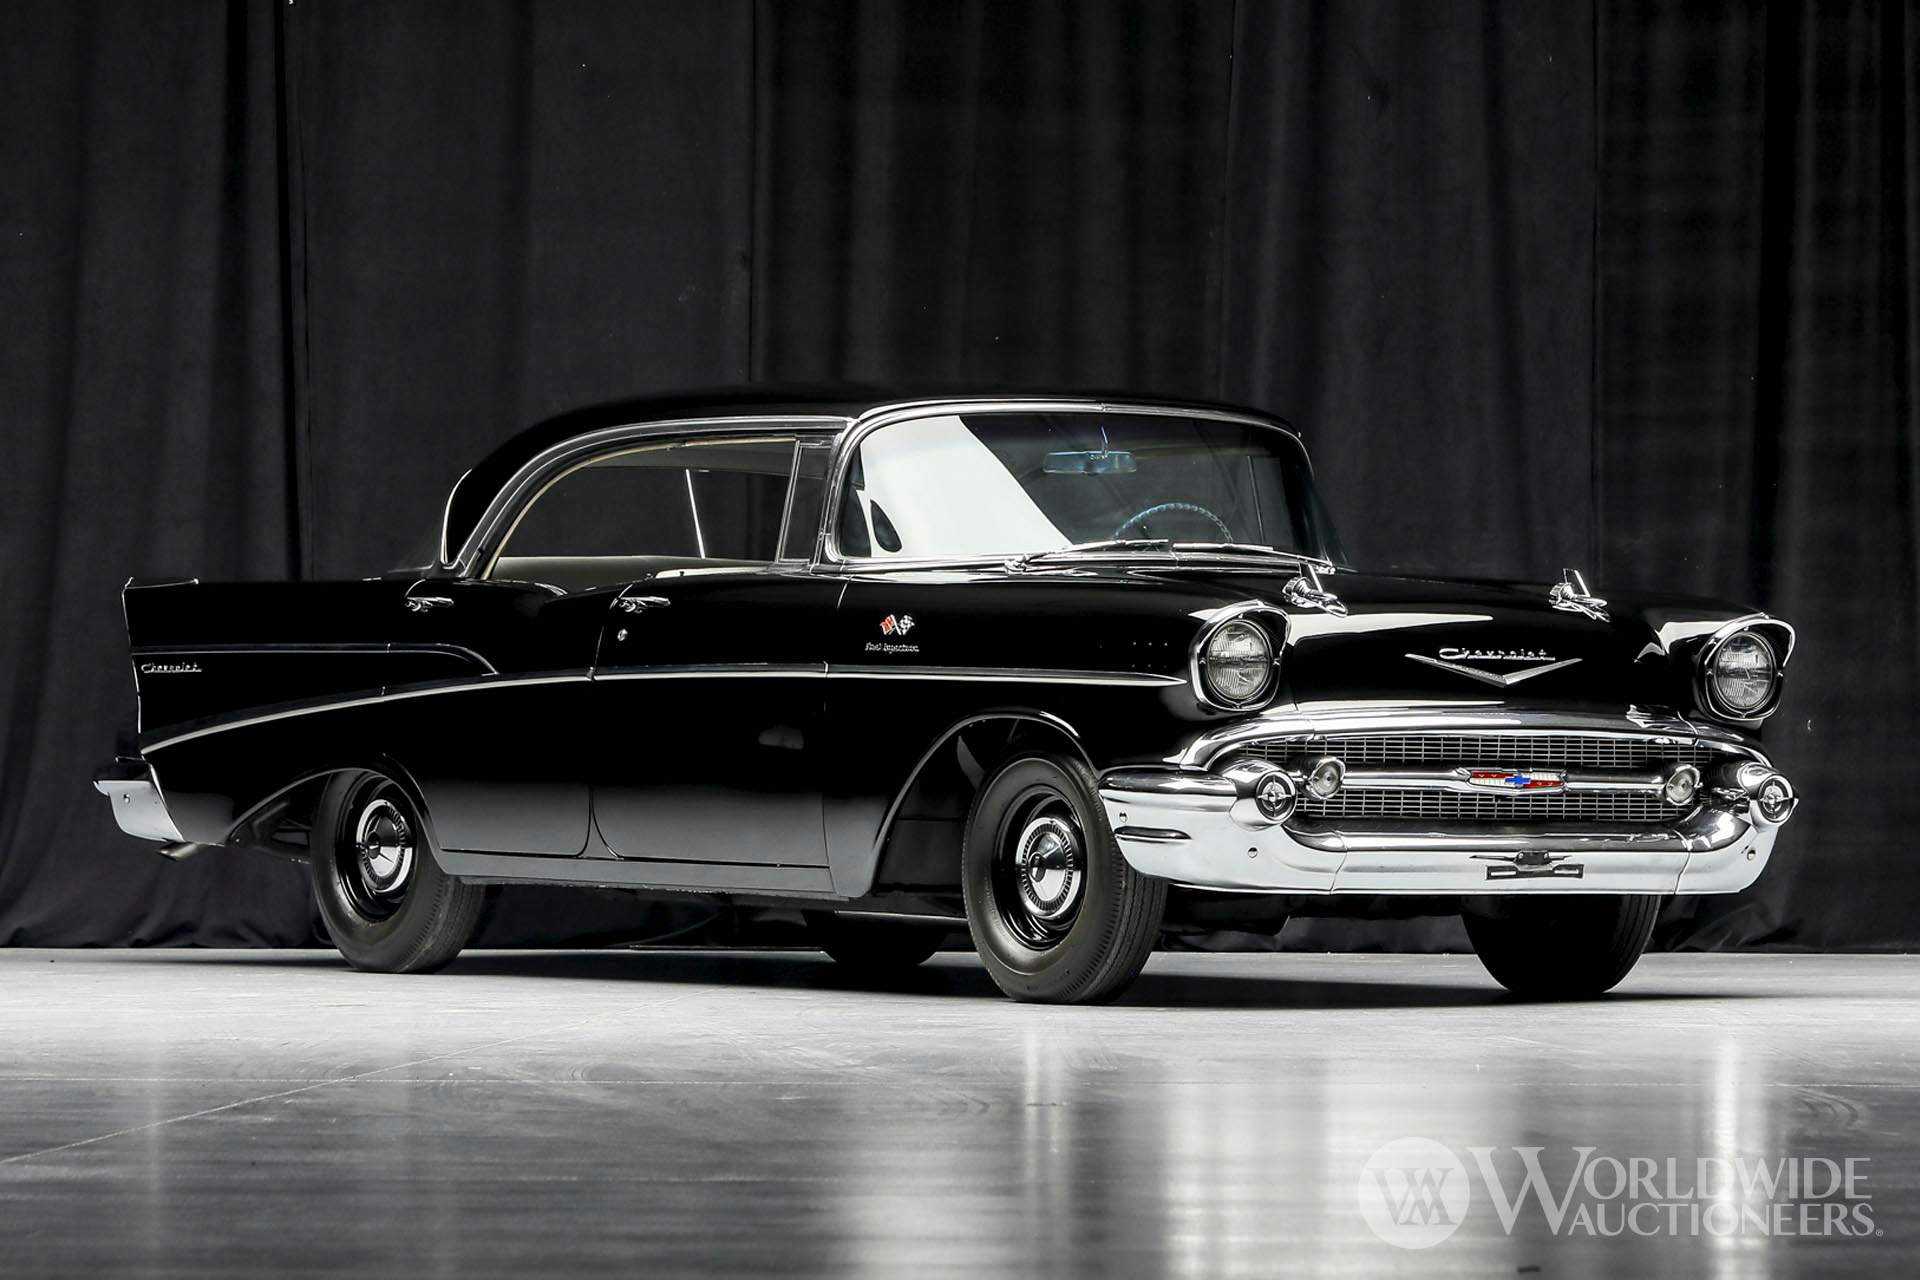 1957 Chevrolet  210 Fuel-Injected Hardtop Sport Sedan